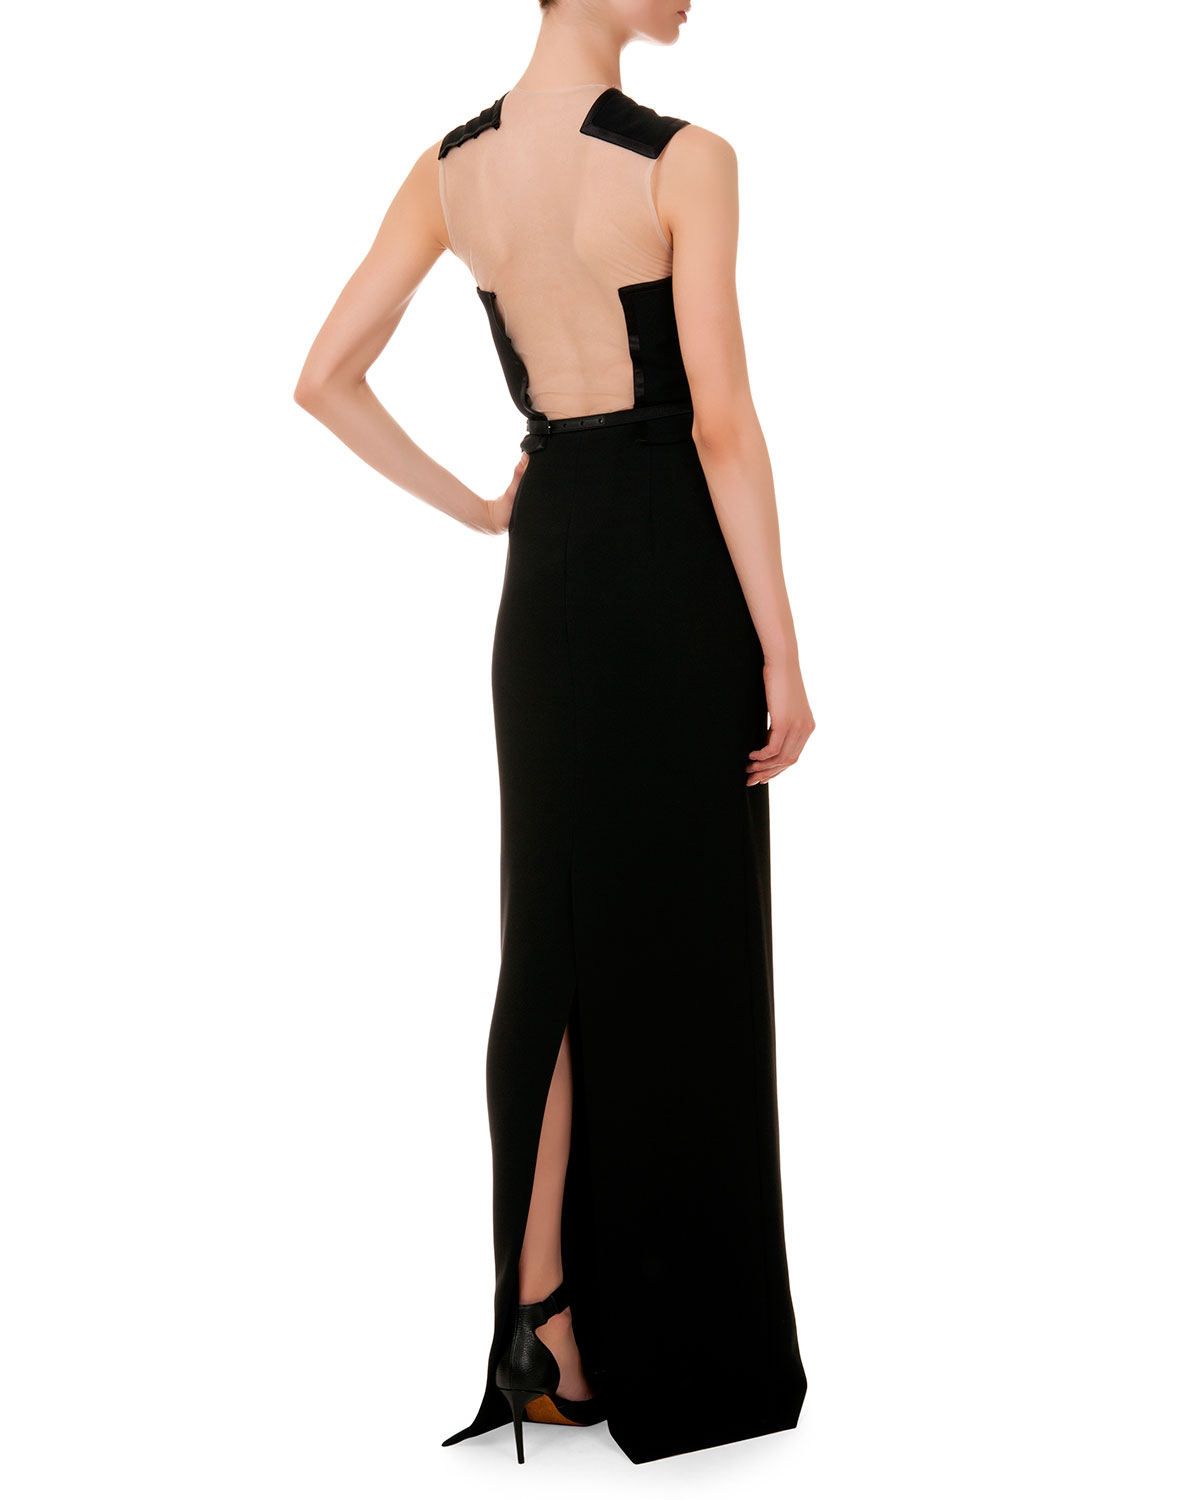 givenchy jeweled dragonfly belt sleeveless gown in black